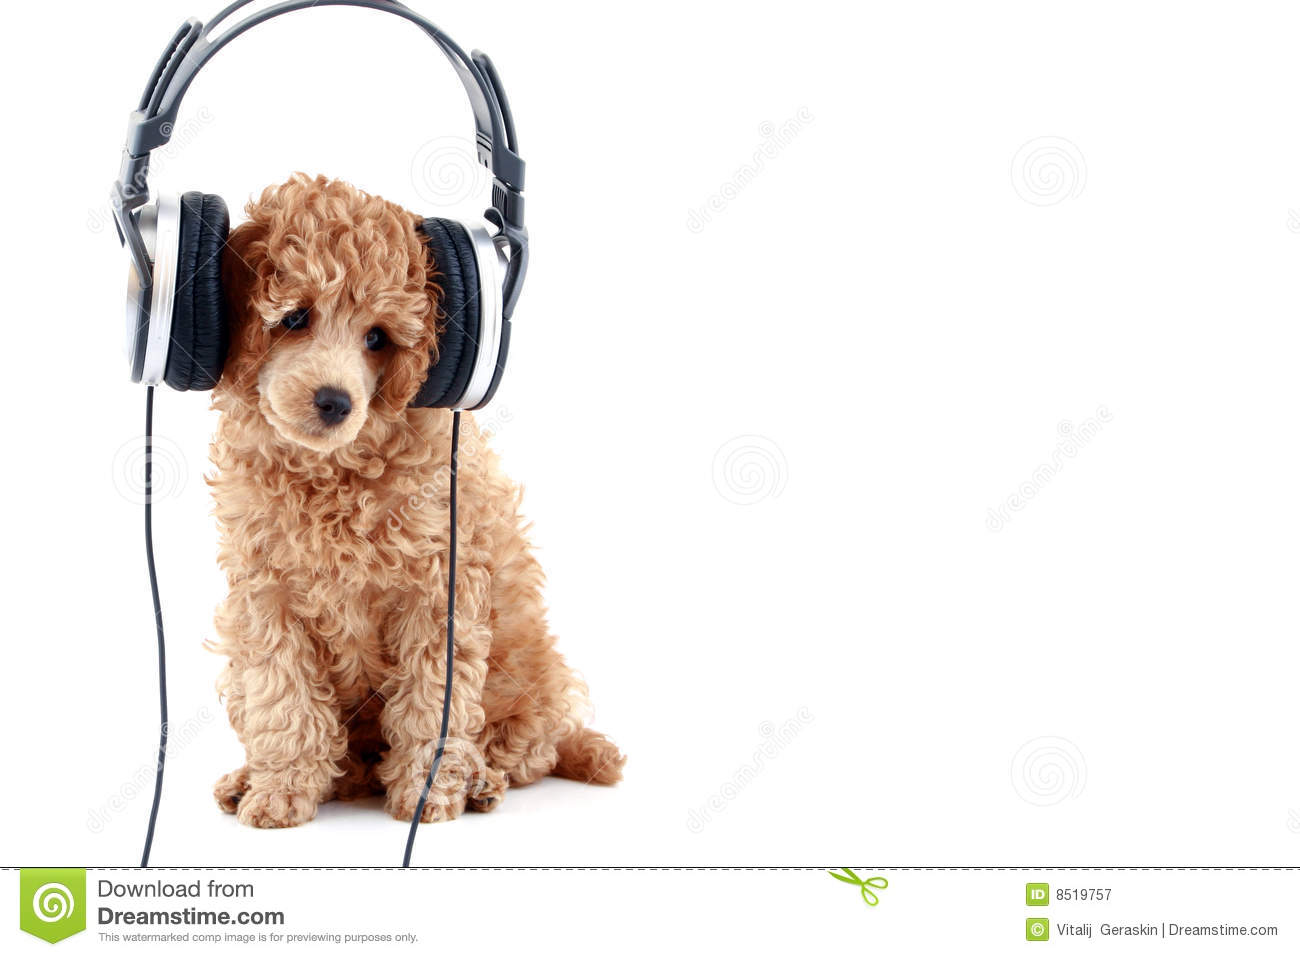 Apricot poodle listening music